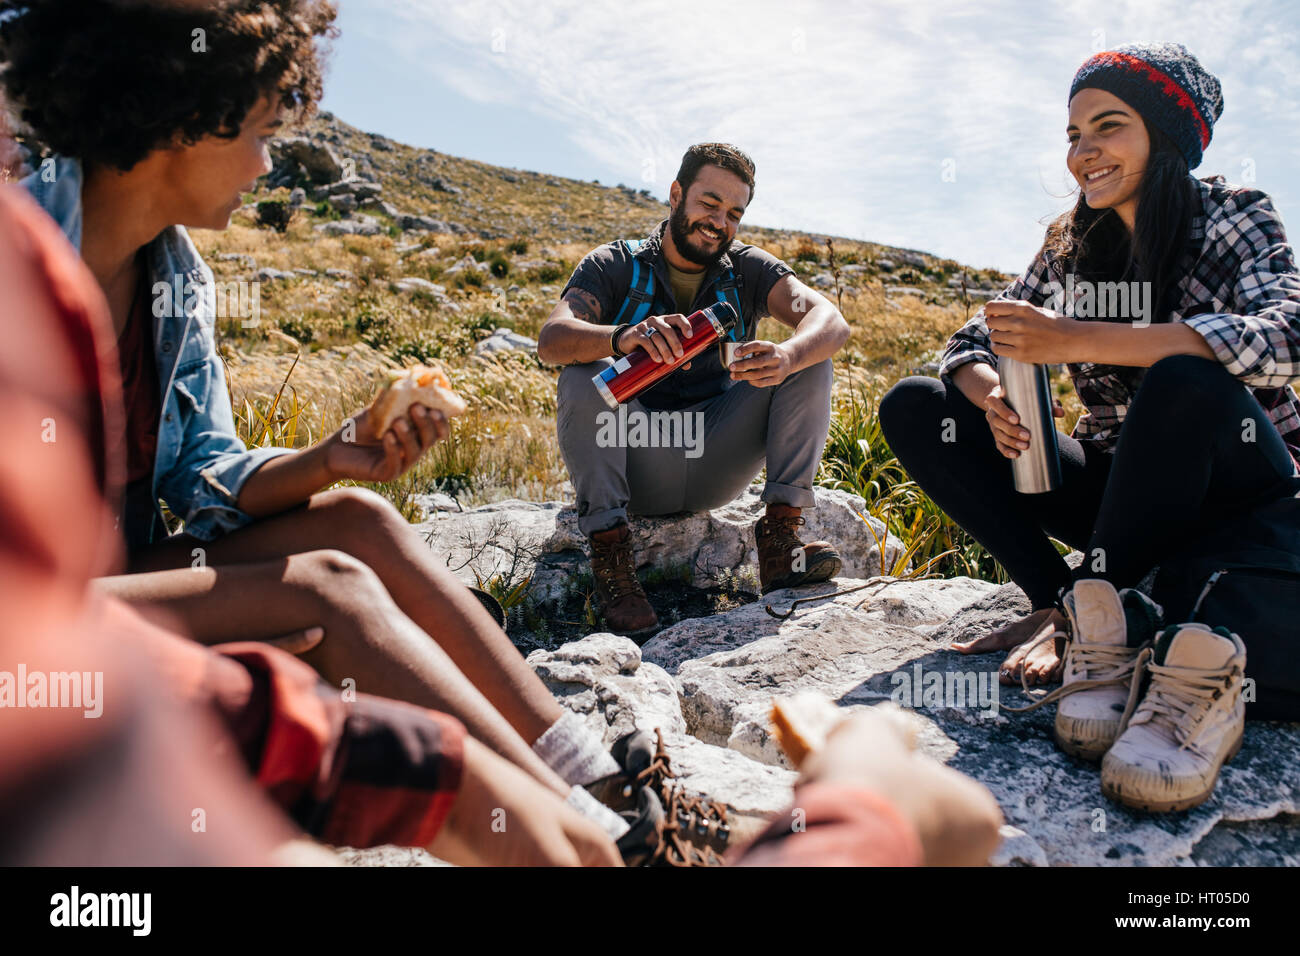 Group of hikers couple eating sandwiches and drinking coffee while relaxing in field. Young people having a rest during country hike. Stock Photo